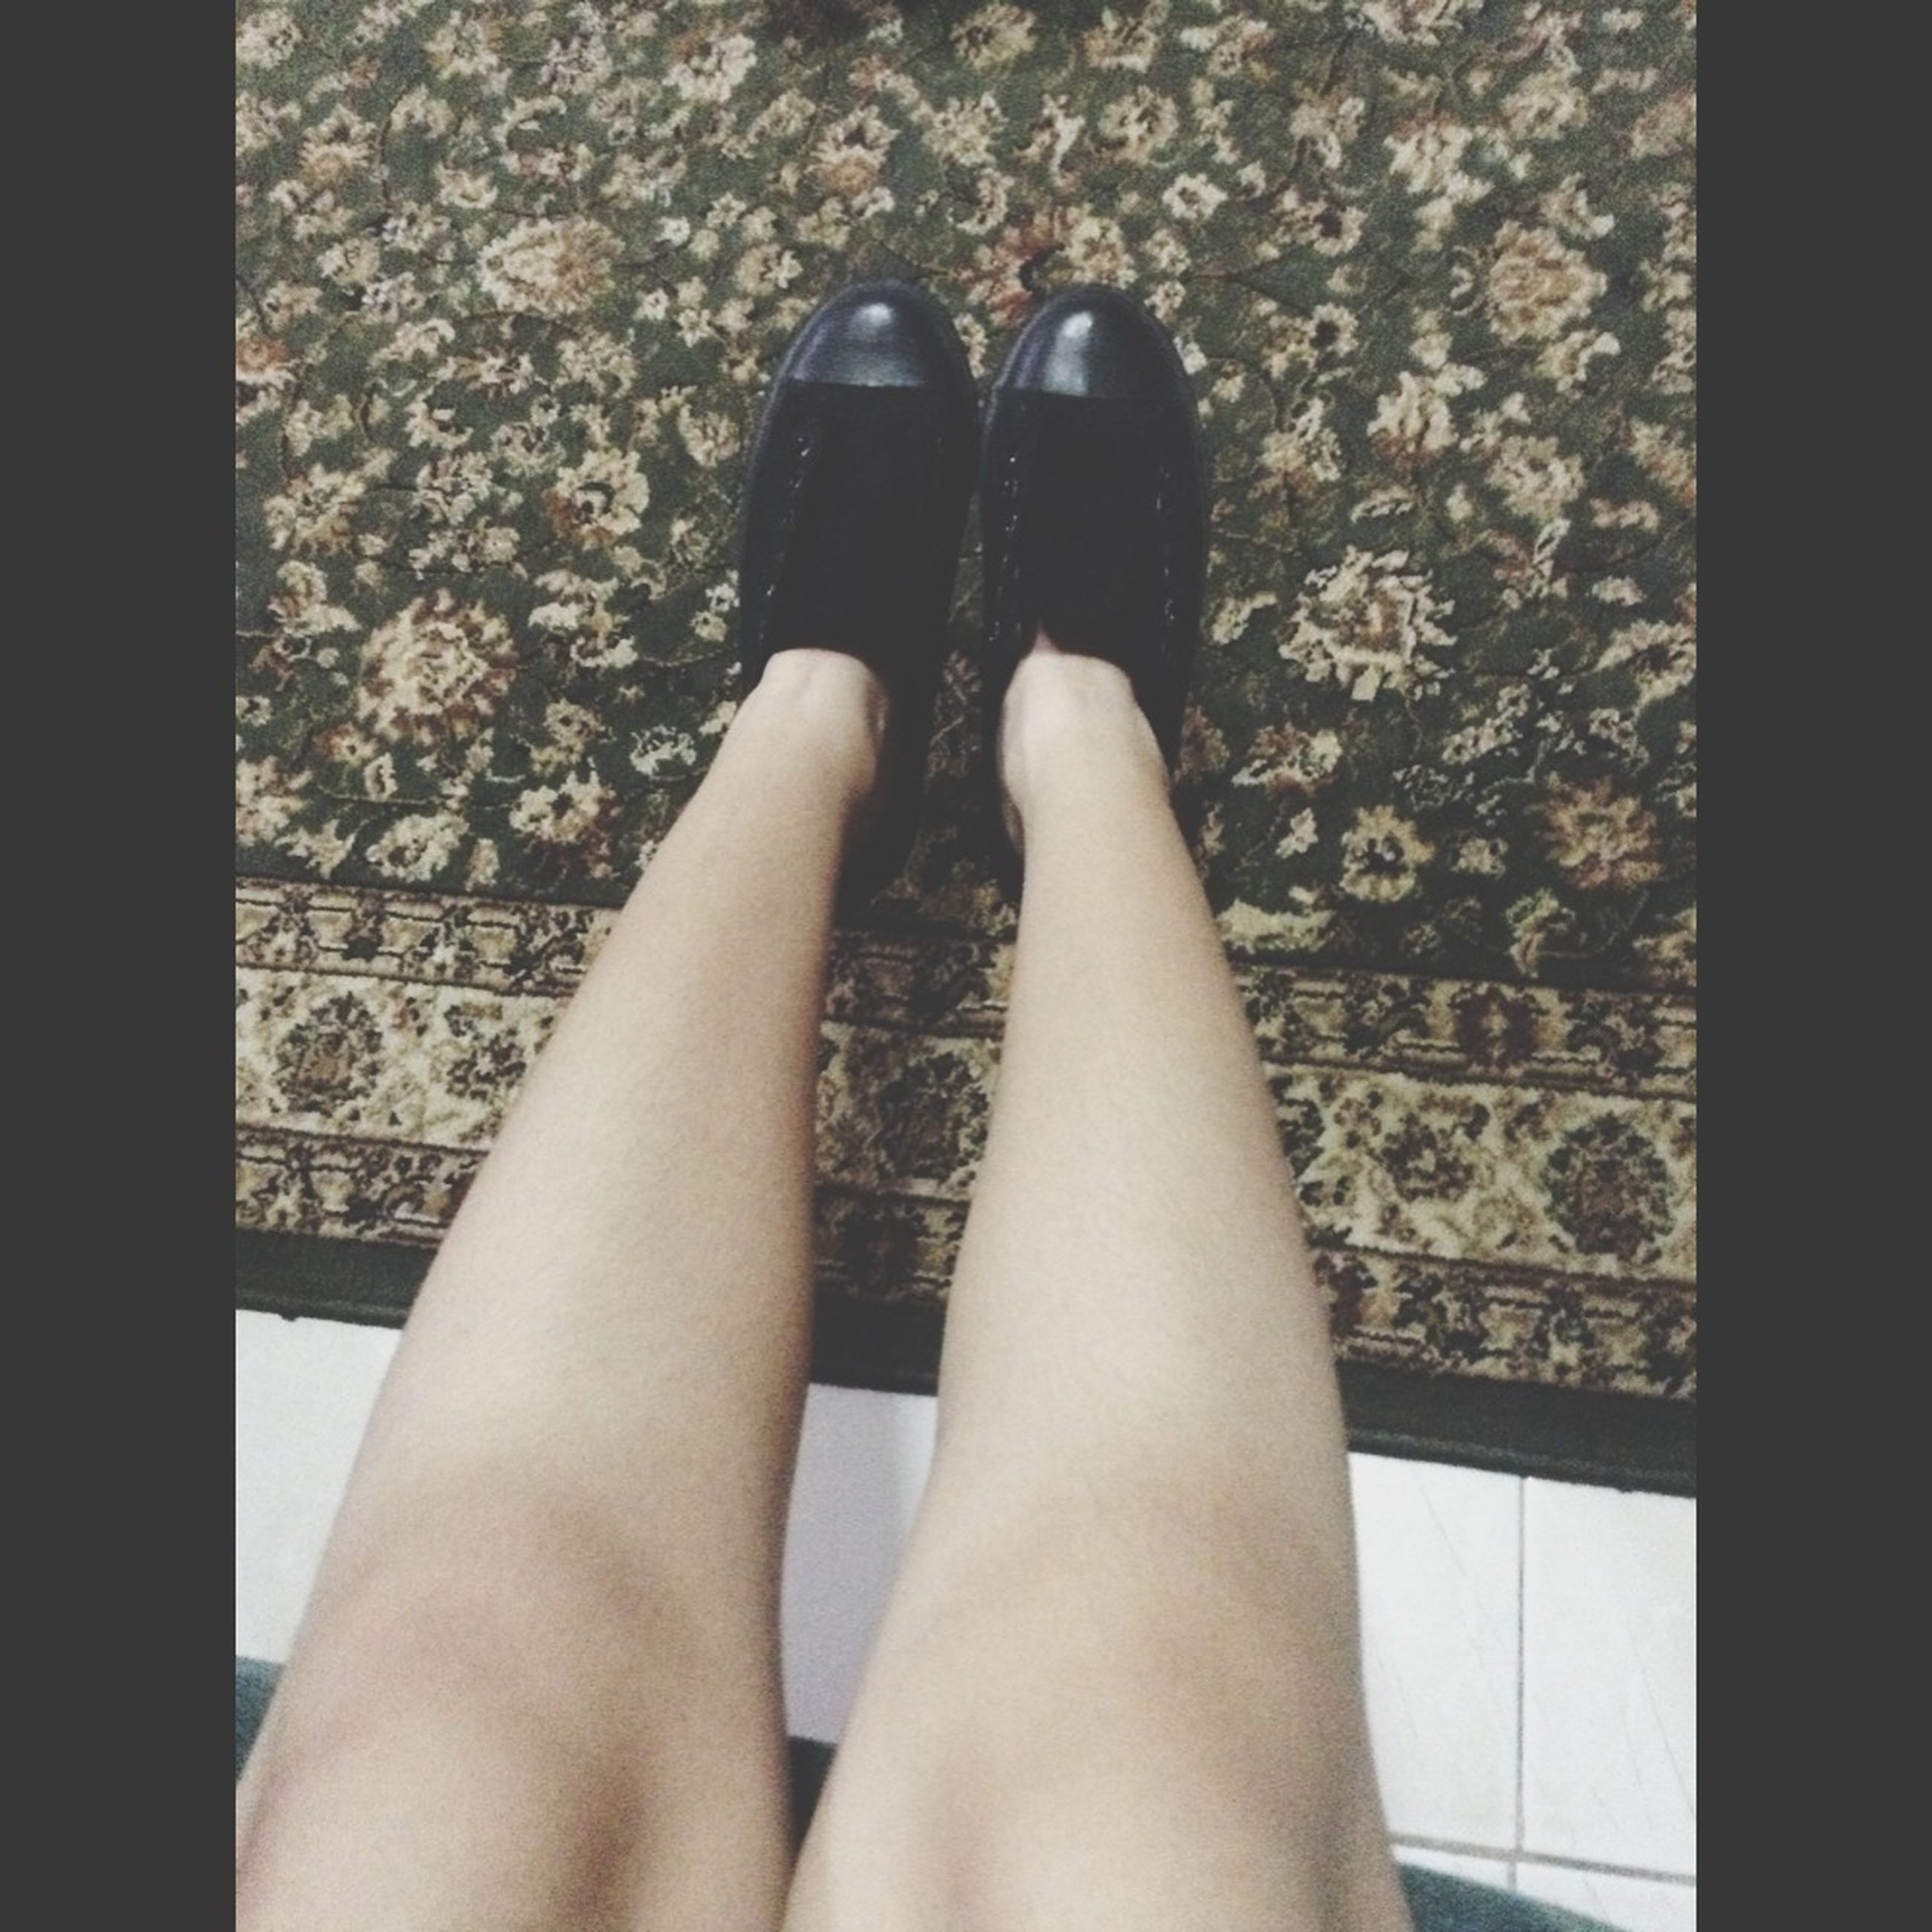 person, low section, personal perspective, lifestyles, indoors, human foot, standing, shoe, part of, leisure activity, barefoot, femininity, sensuality, high angle view, fashion, legs crossed at ankle